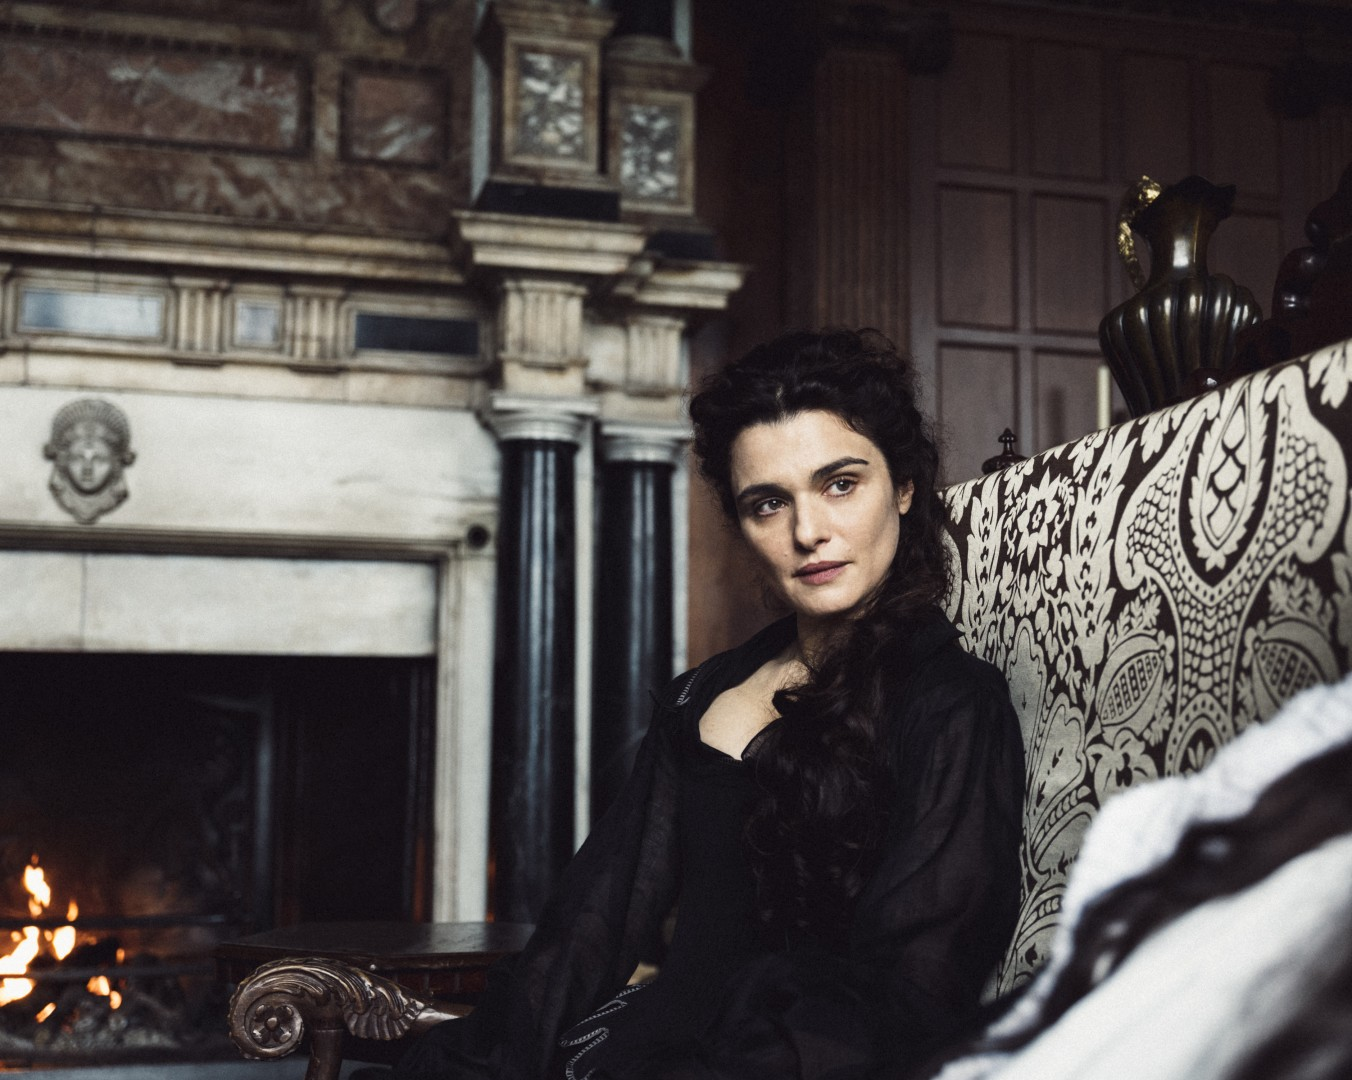 Rachel Weisz Photo by Yorgos Lanthimos 2018 Twentieth Century Fox Film Corporation All Rights Reserved